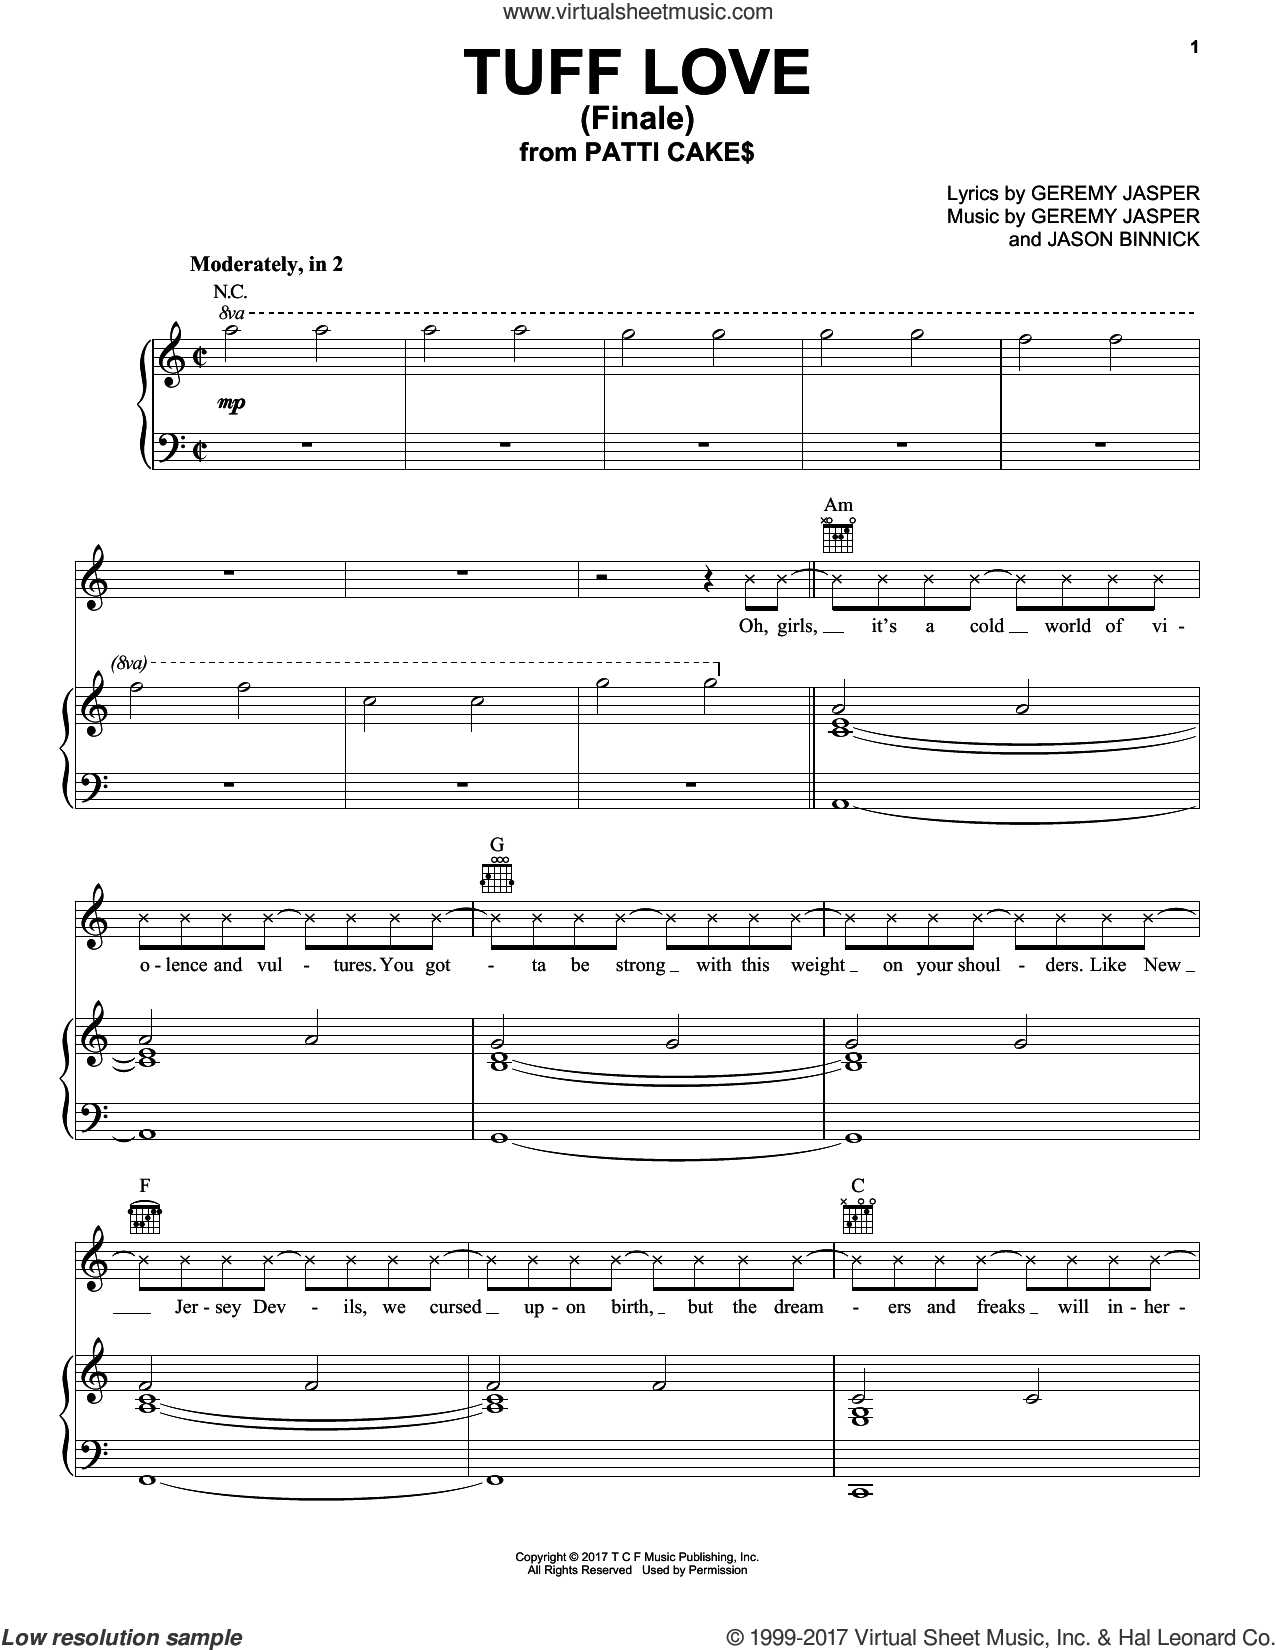 Tuff Love (Finale) sheet music for voice, piano or guitar by Jason Binnick and Geremy Jasper, intermediate skill level